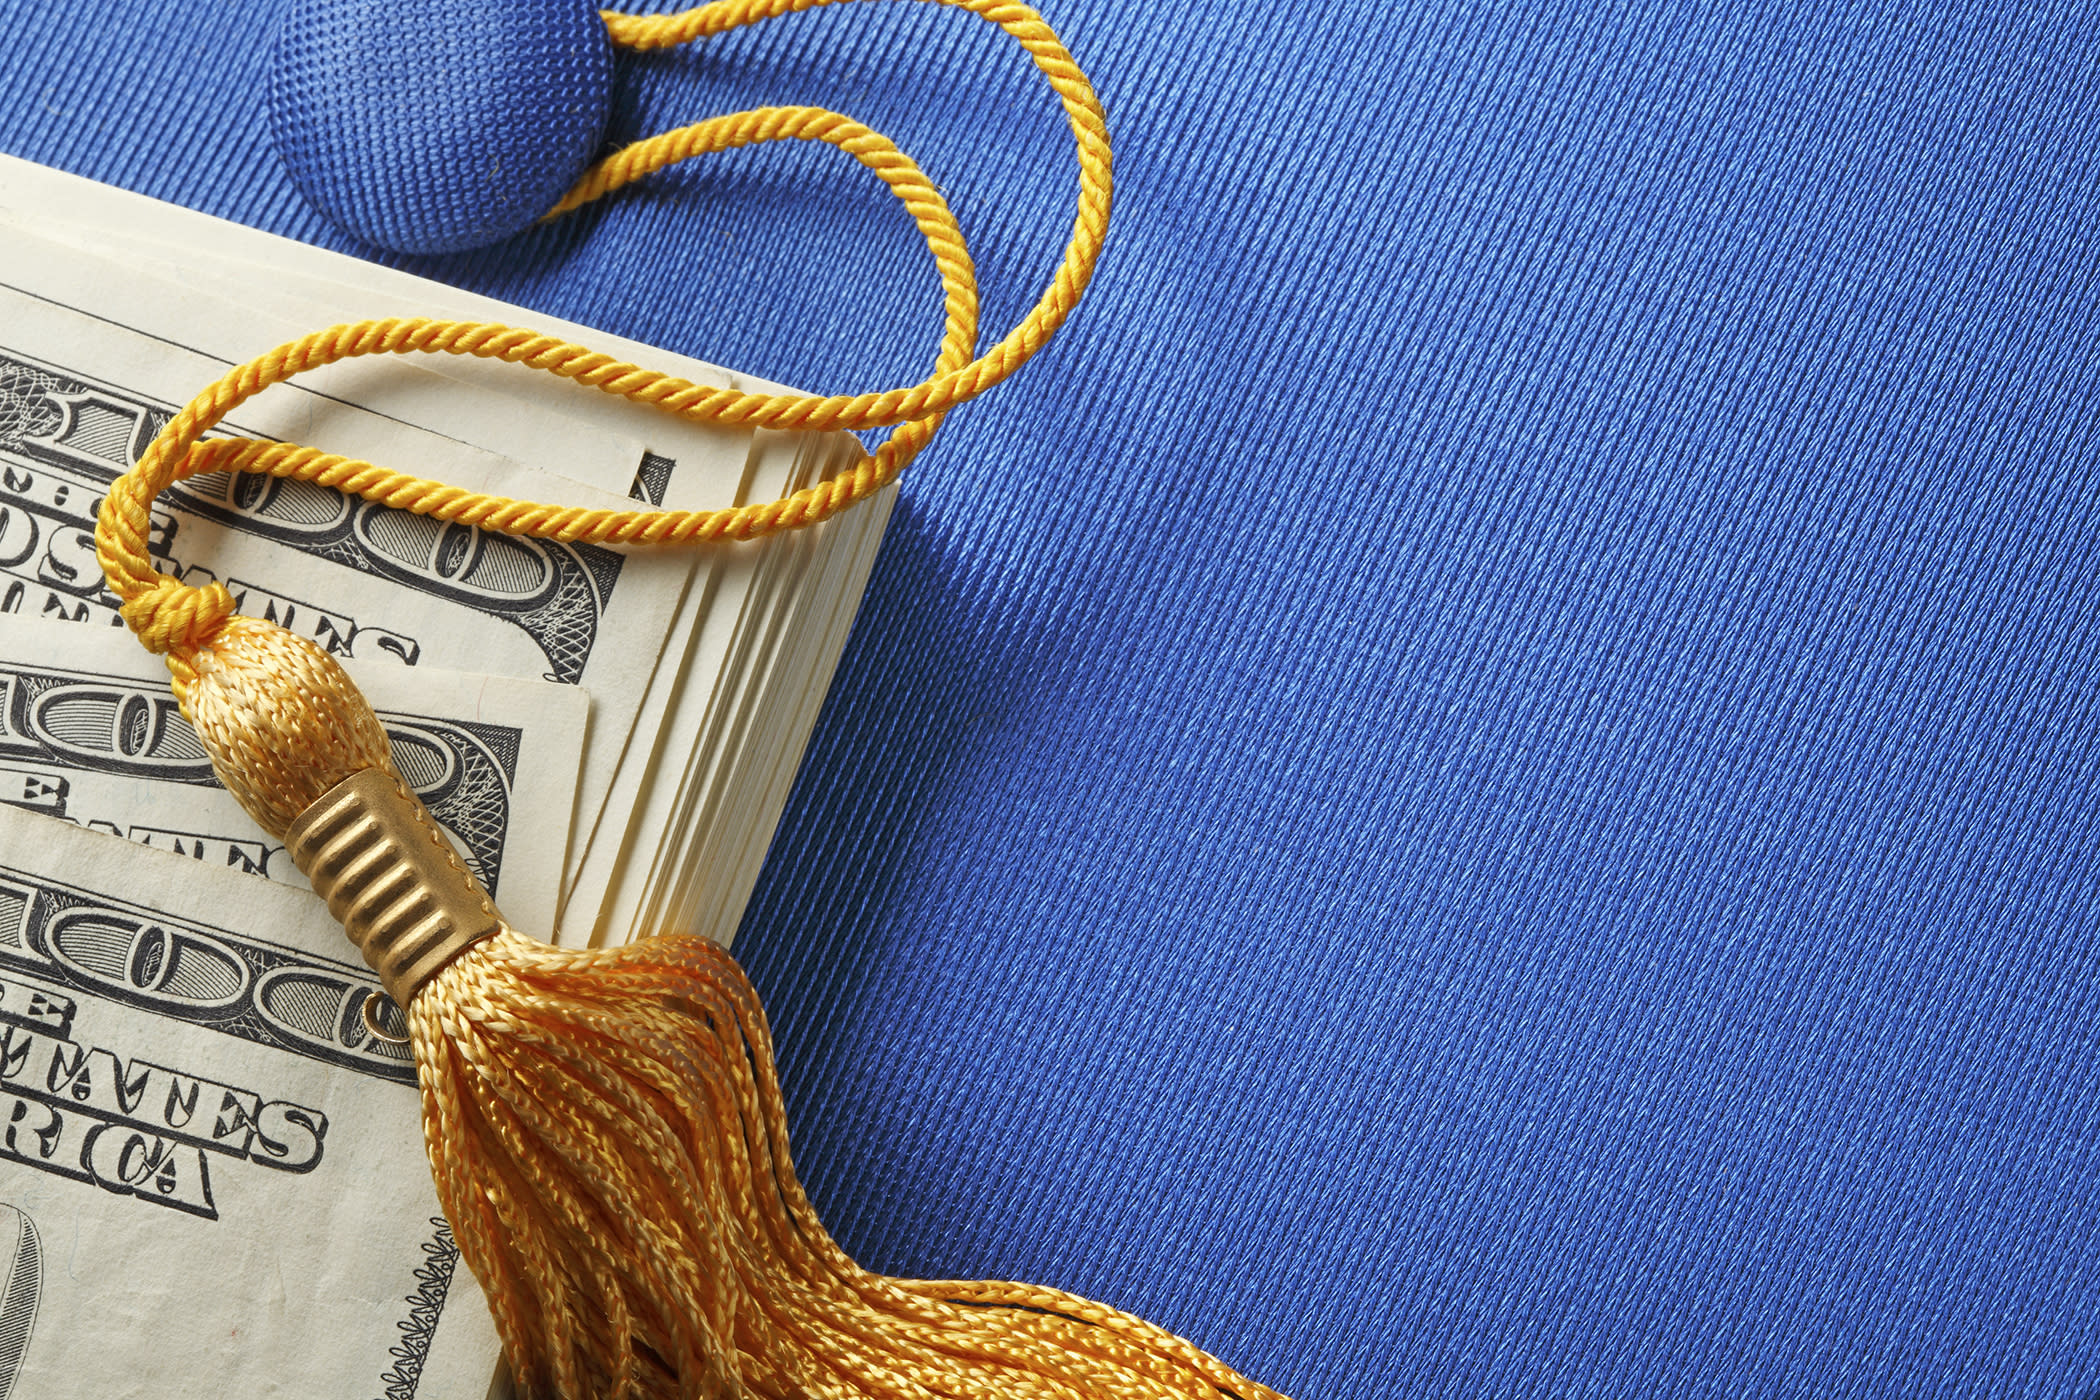 All of Your Federal Student Loan Repayment Options in One Chart